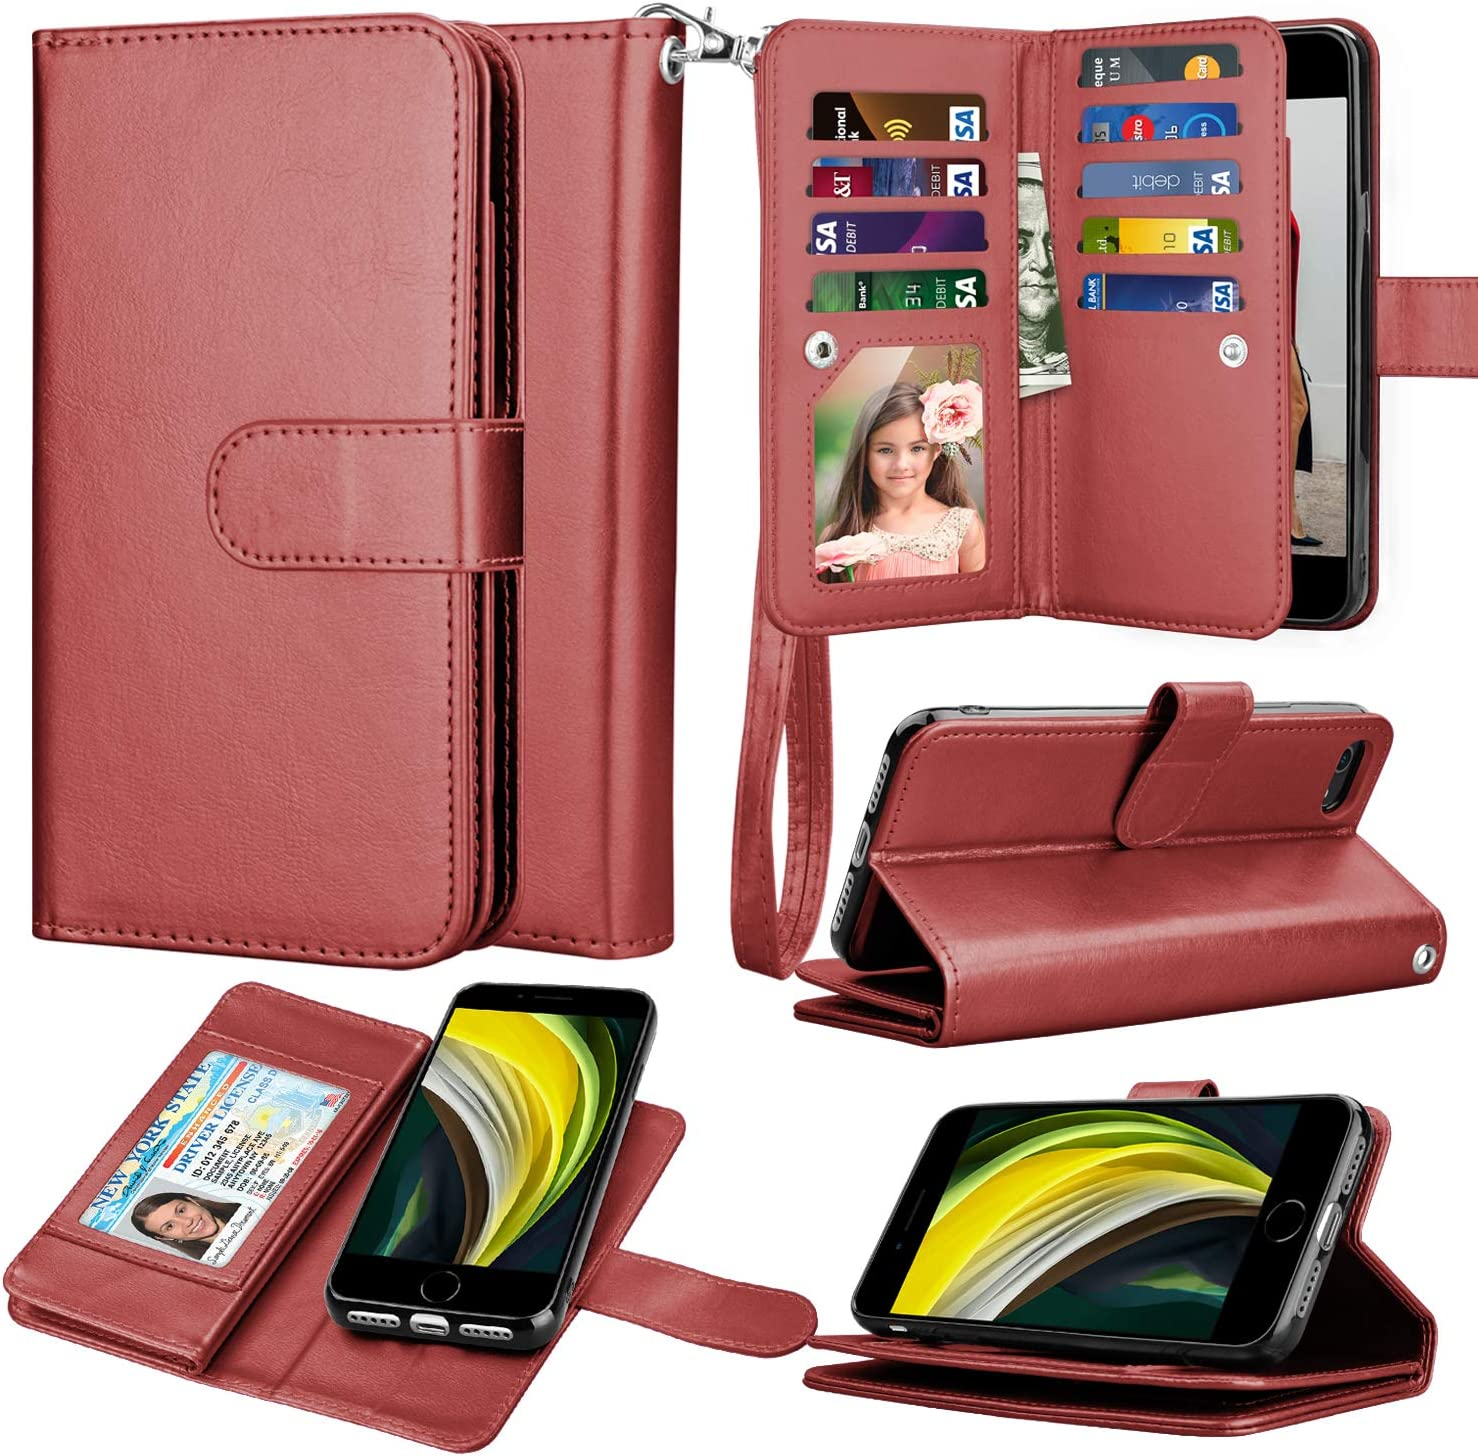 Takfox Wallet Case for iPhone SE 2020/SE2, for iPhone 8/iPhone 7 Case, PU Leather ID Credit Card Slots Holder Folio Flip Kickstand Detachable Magnetic Phone Case & Lanyard for iPhone SE 2nd-Wine Red